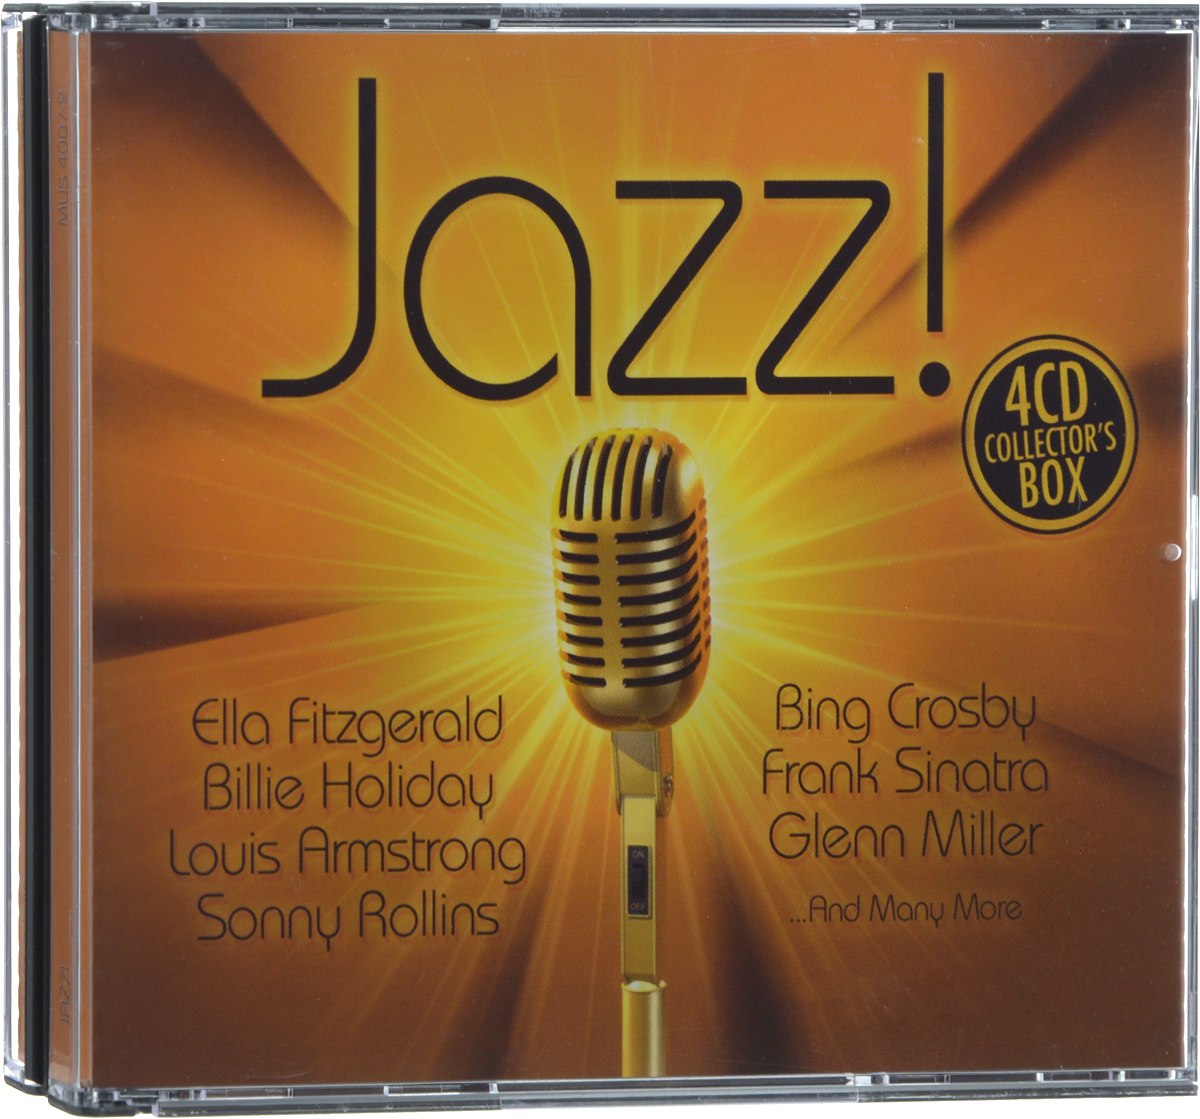 Бенни Гудман,The Glenn Miller Orchestra,The Count Basie Orchestra,Coleman Hawkins All Star Octet,Duke Ellington And His Orchestra,Les Brown And His Band Of Renown,Isham Jones And His Orchestra,Teddy Powell And His Orchestra,Harry James & His Orchestra,Woody Herman & His Orchestra,Джон Кангас,Элла Фитцжеральд,Билли Холидей,Бинг Кросби,Луис Джордан,Фрэнк Синатра,Луи Прима,Джин Келли,Джуди Гарланд,Кэб Кэллоуэй,Каунт Бэйси Jazz! (4 CD) каунт бэйси count basie april in paris lp